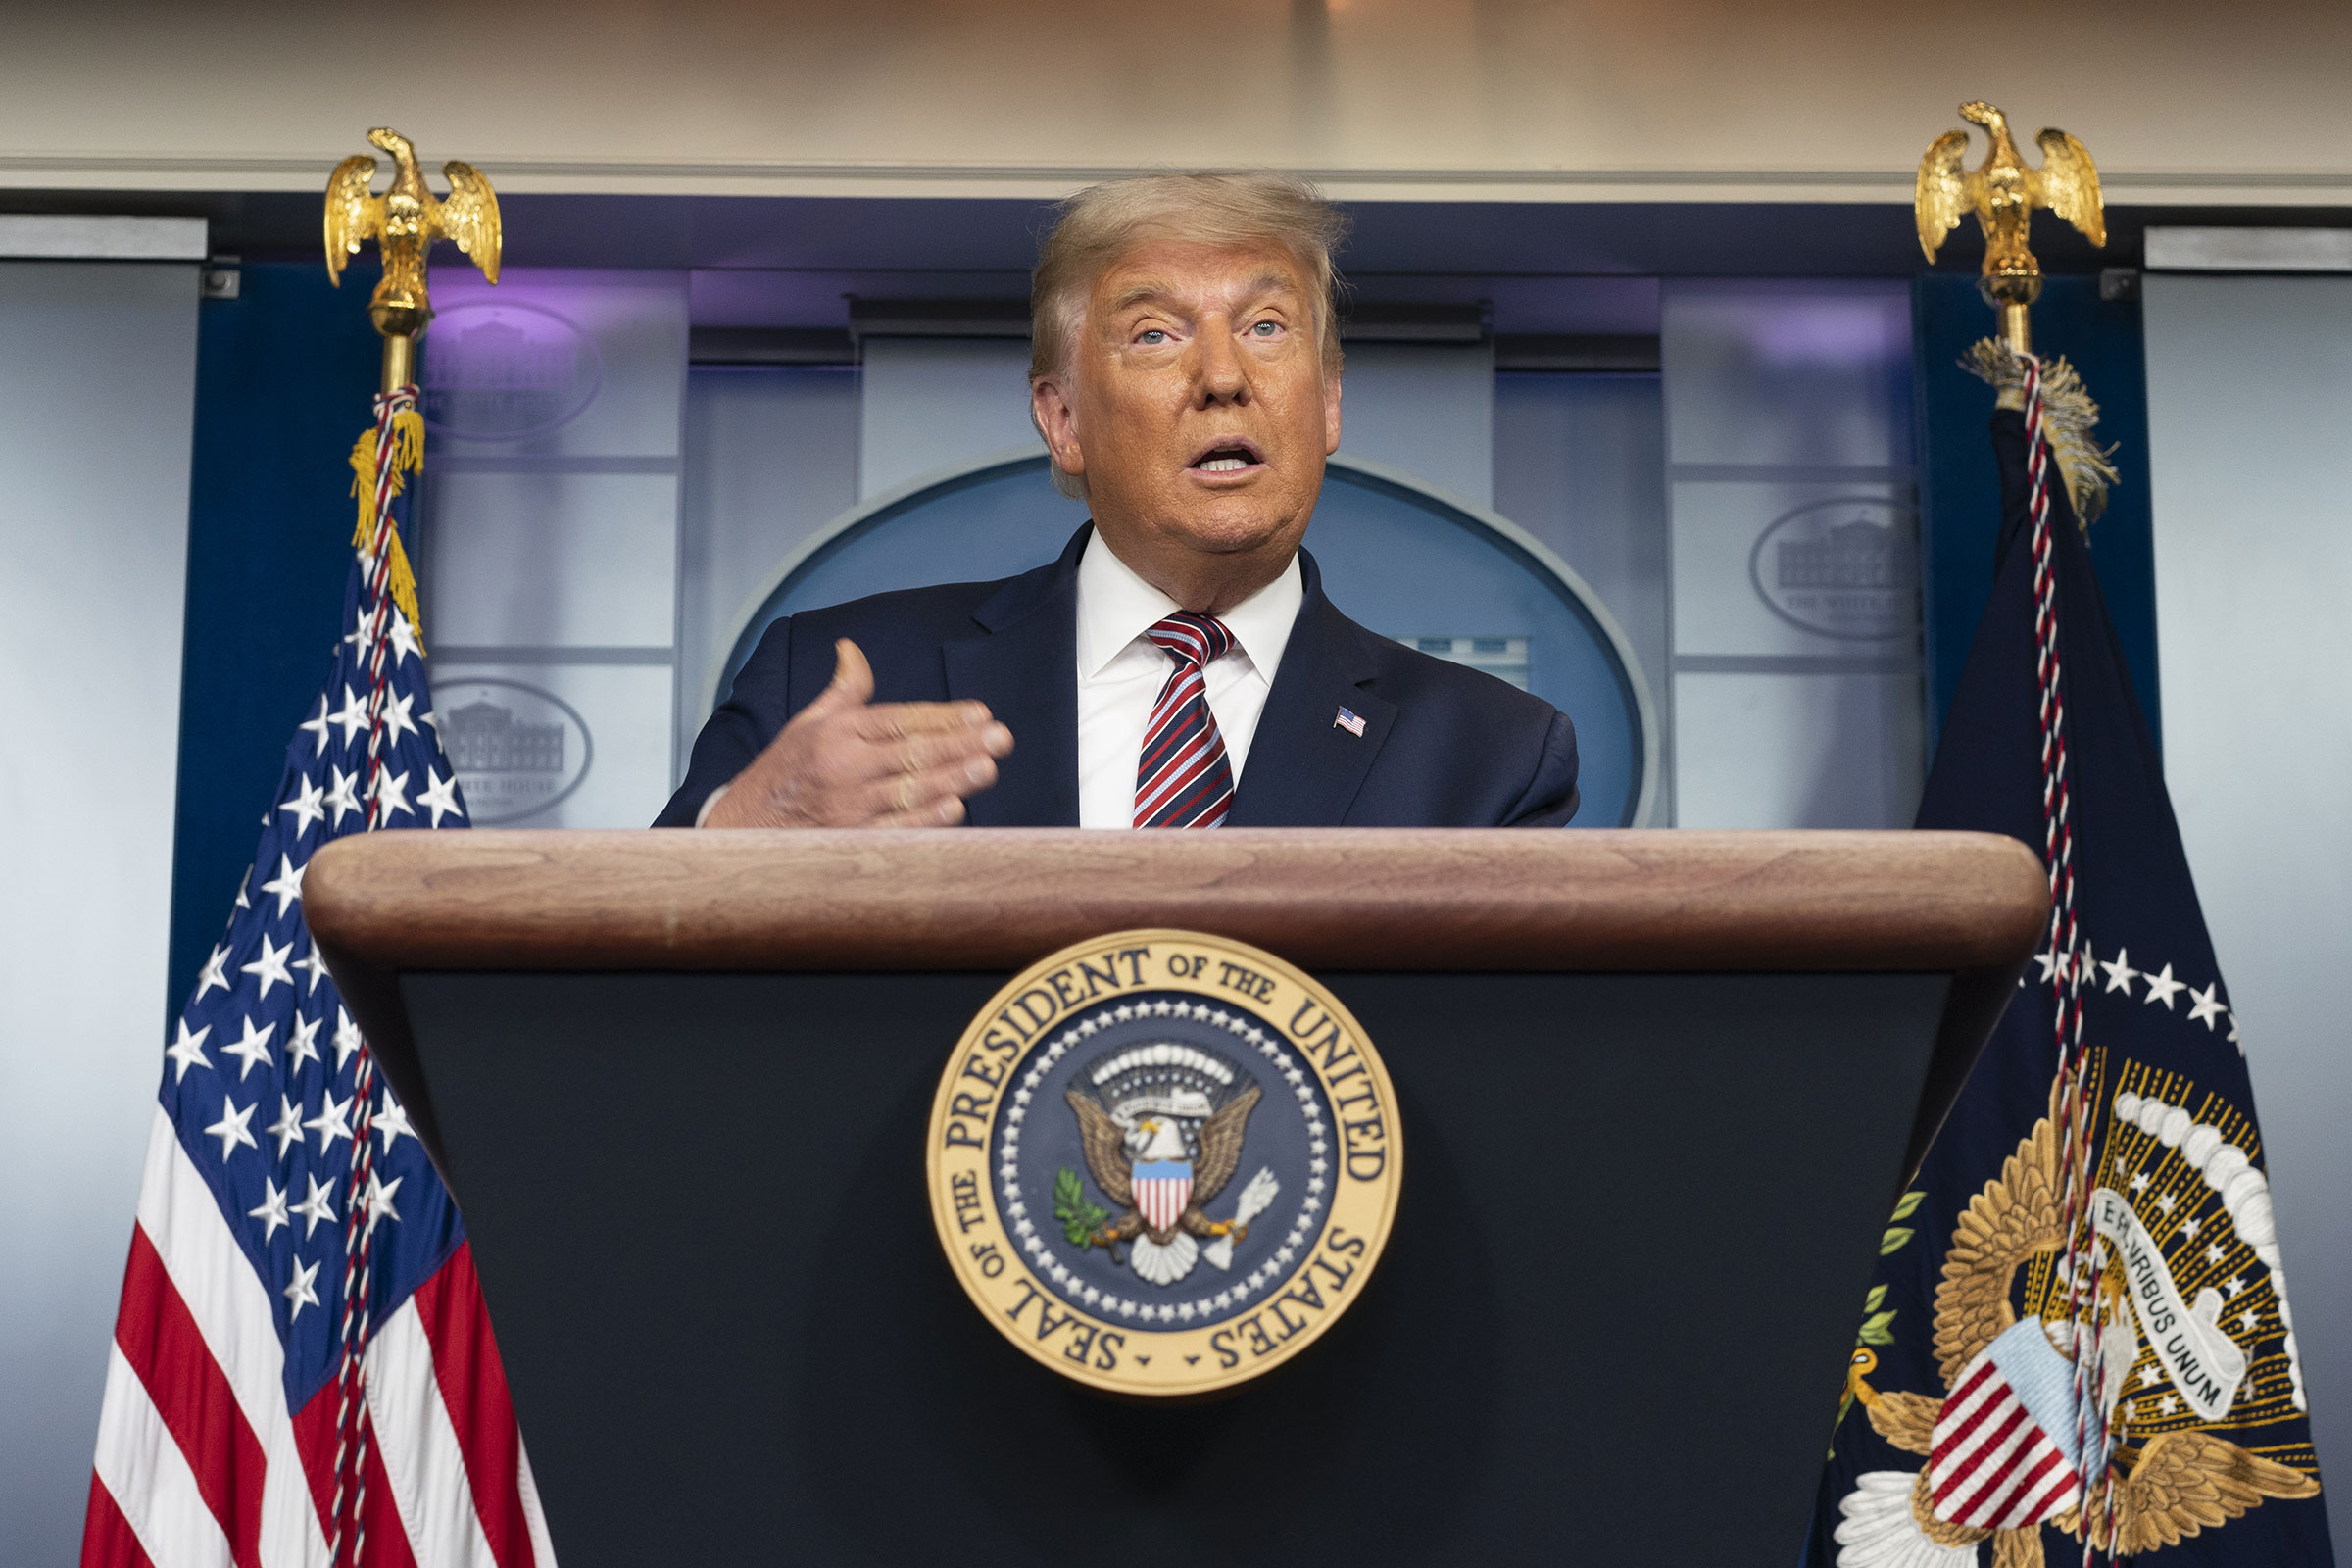 President Donald Trump speaks during a news conference in the Press Briefing Room at the White House in Washington, D.C., on Nov. 5, 2020.